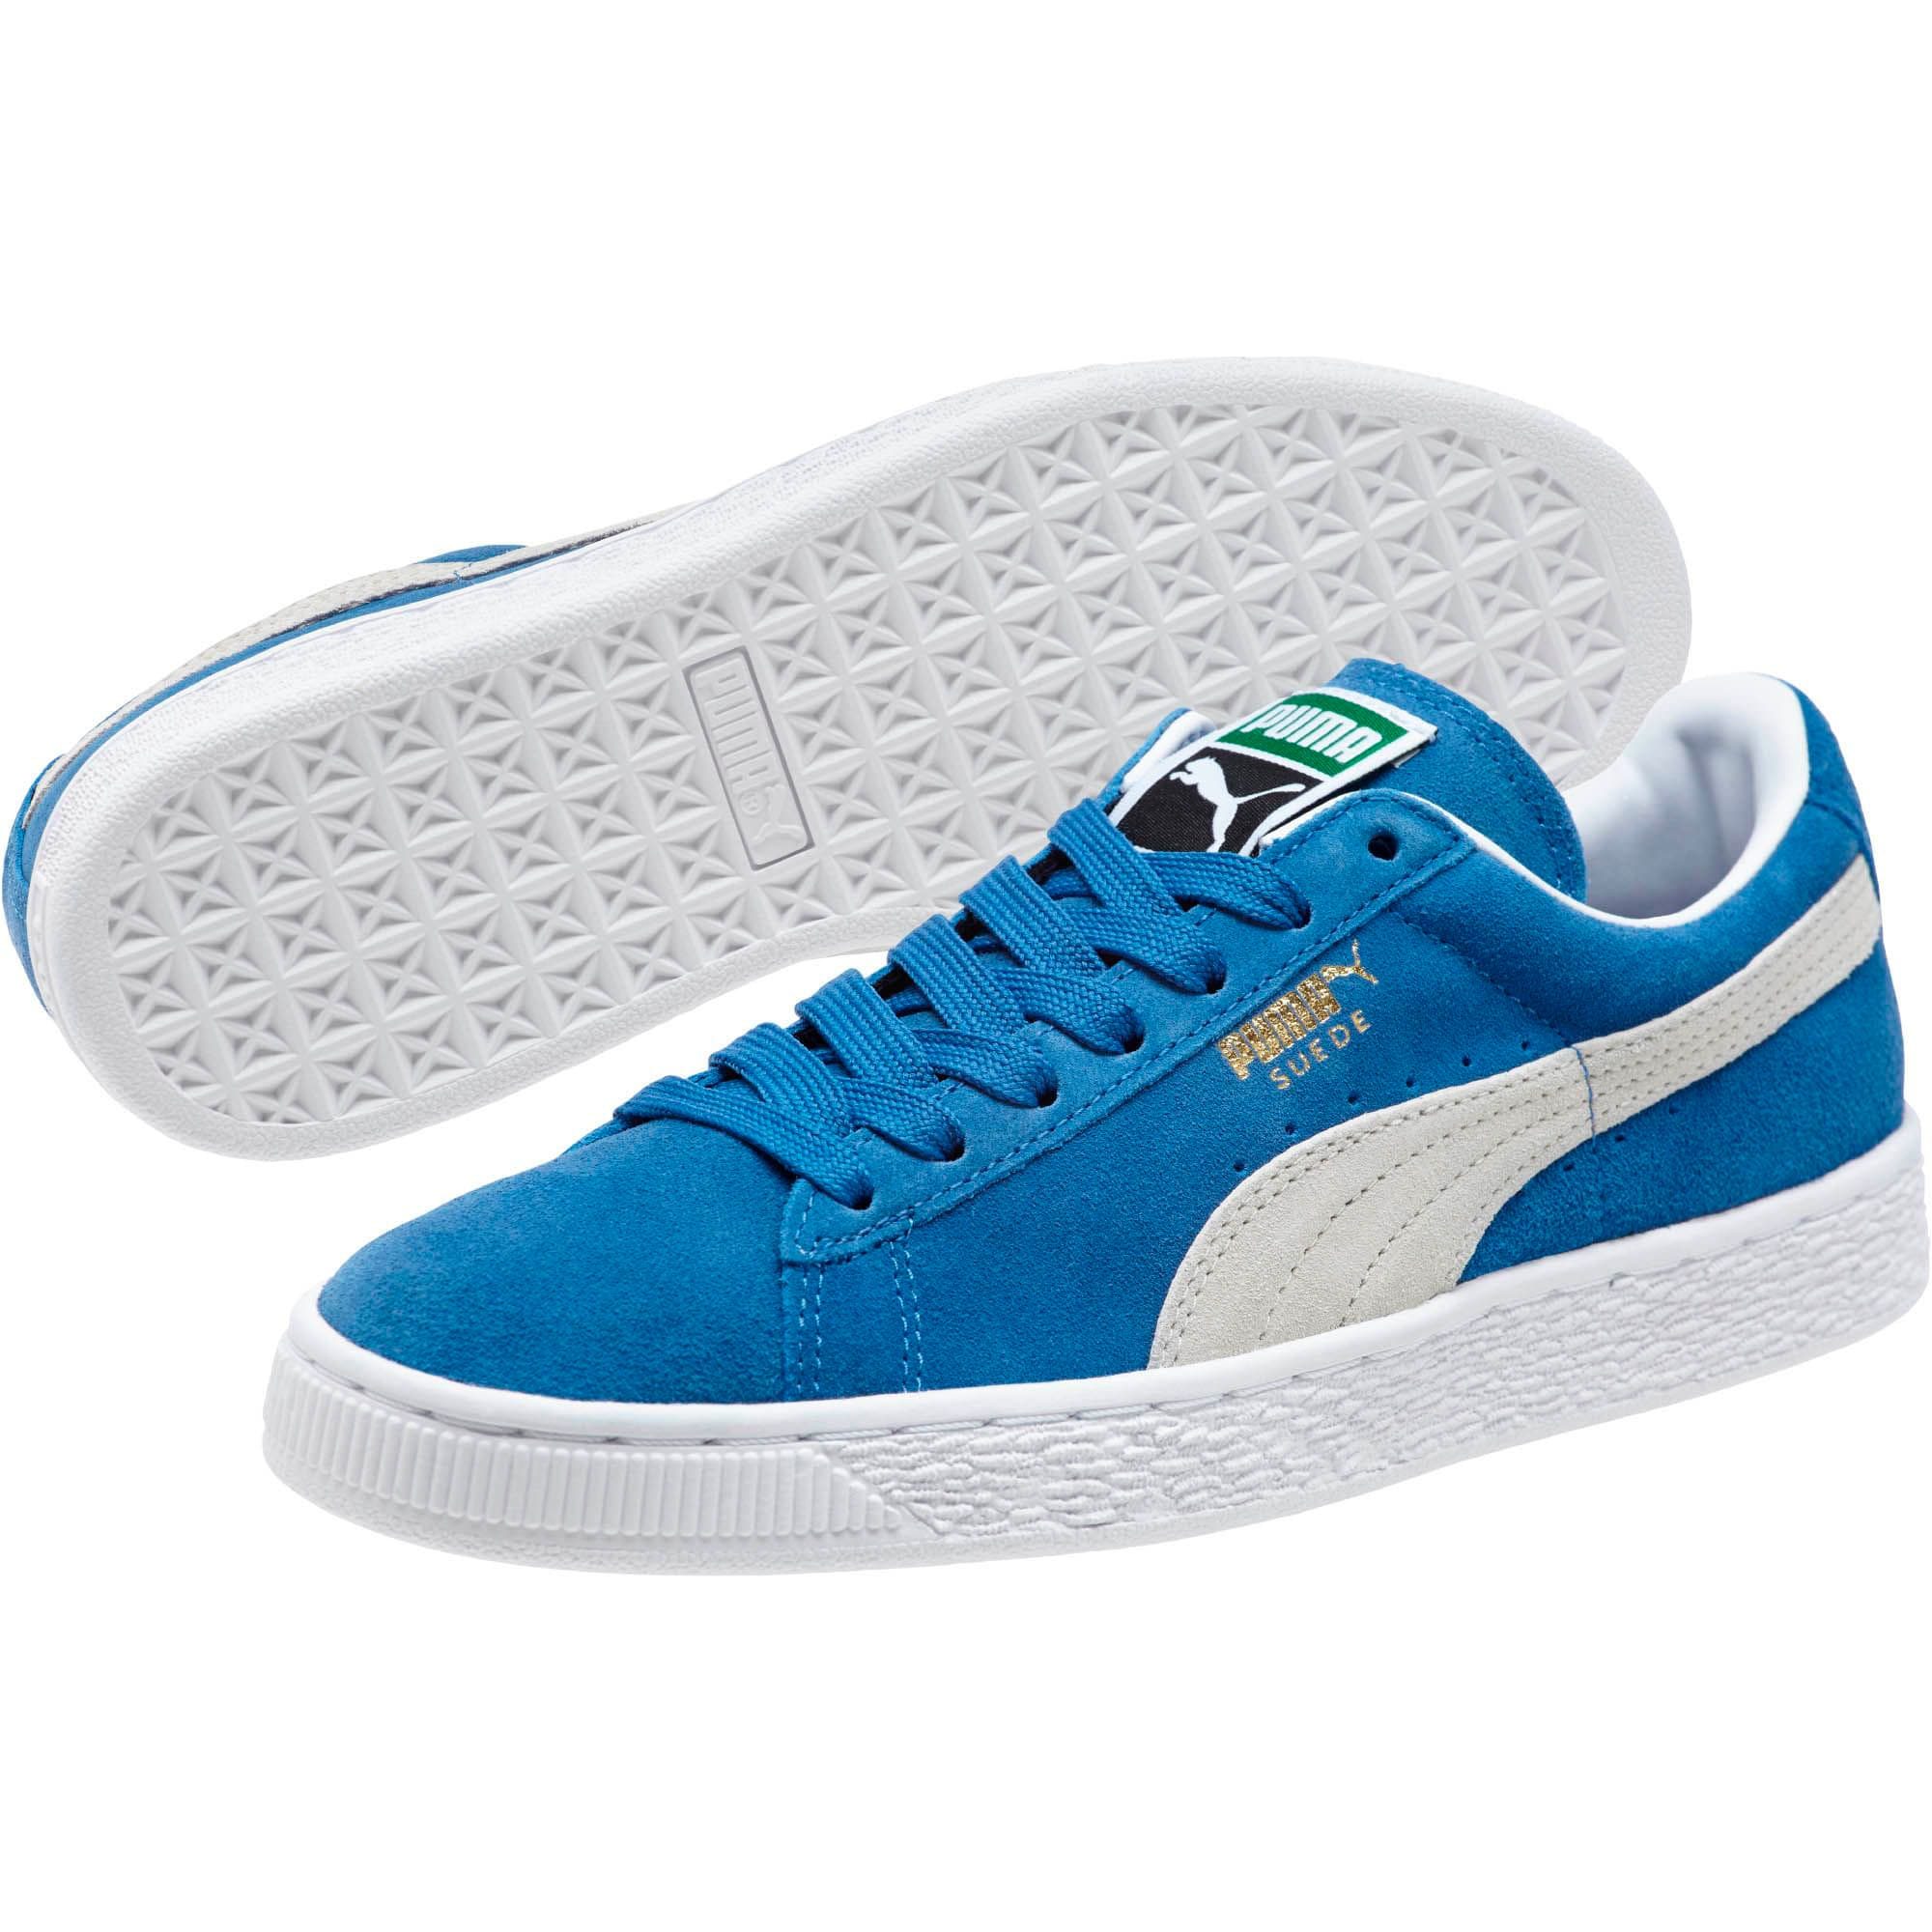 Thumbnail 2 of Suede Classic + Women's Sneakers, olympian blue-white, medium